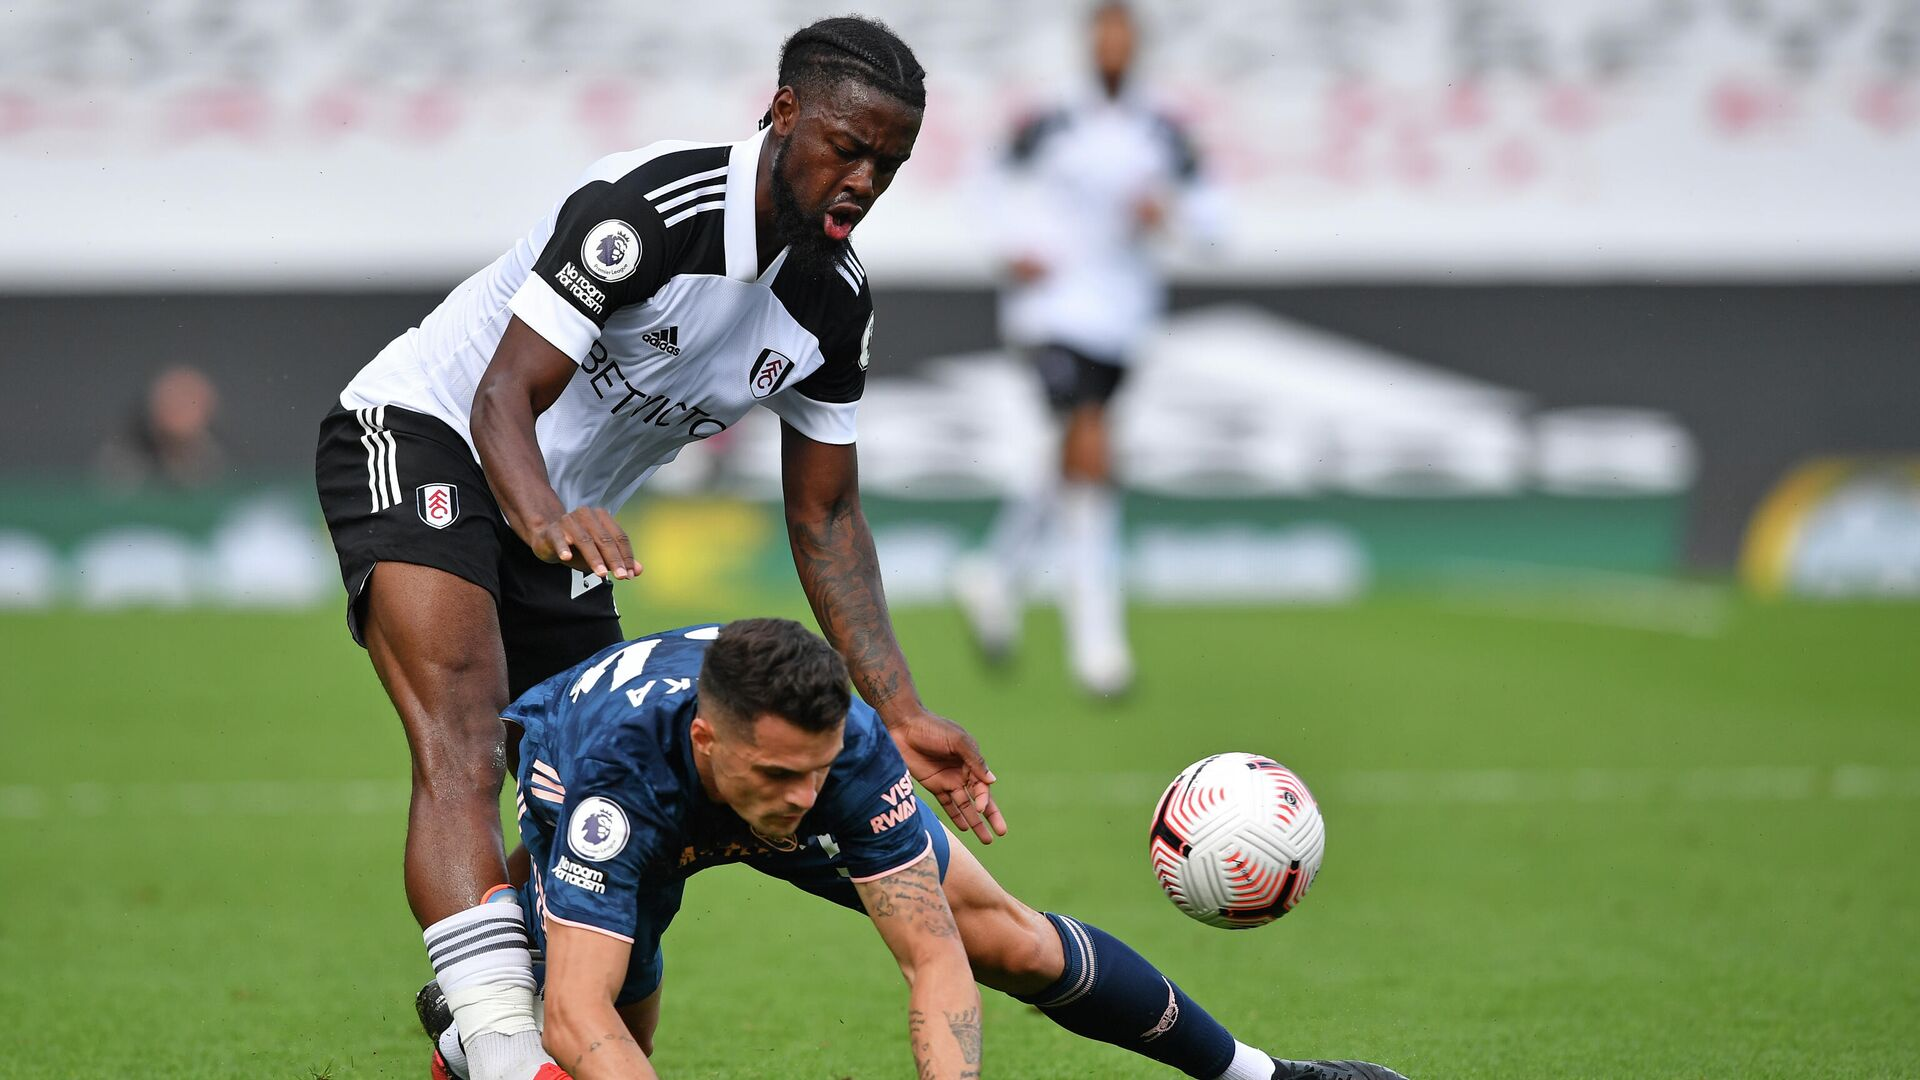 Fulham's English midfielder Josh Onomah (L) vies with Arsenal's Swiss midfielder Granit Xhaka (R) during the English Premier League football match between Fulham and Arsenal at Craven Cottage in London on September 12, 2020. (Photo by Ben STANSALL / POOL / AFP) / RESTRICTED TO EDITORIAL USE. No use with unauthorized audio, video, data, fixture lists, club/league logos or 'live' services. Online in-match use limited to 120 images. An additional 40 images may be used in extra time. No video emulation. Social media in-match use limited to 120 images. An additional 40 images may be used in extra time. No use in betting publications, games or single club/league/player publications. /  - РИА Новости, 1920, 14.09.2020